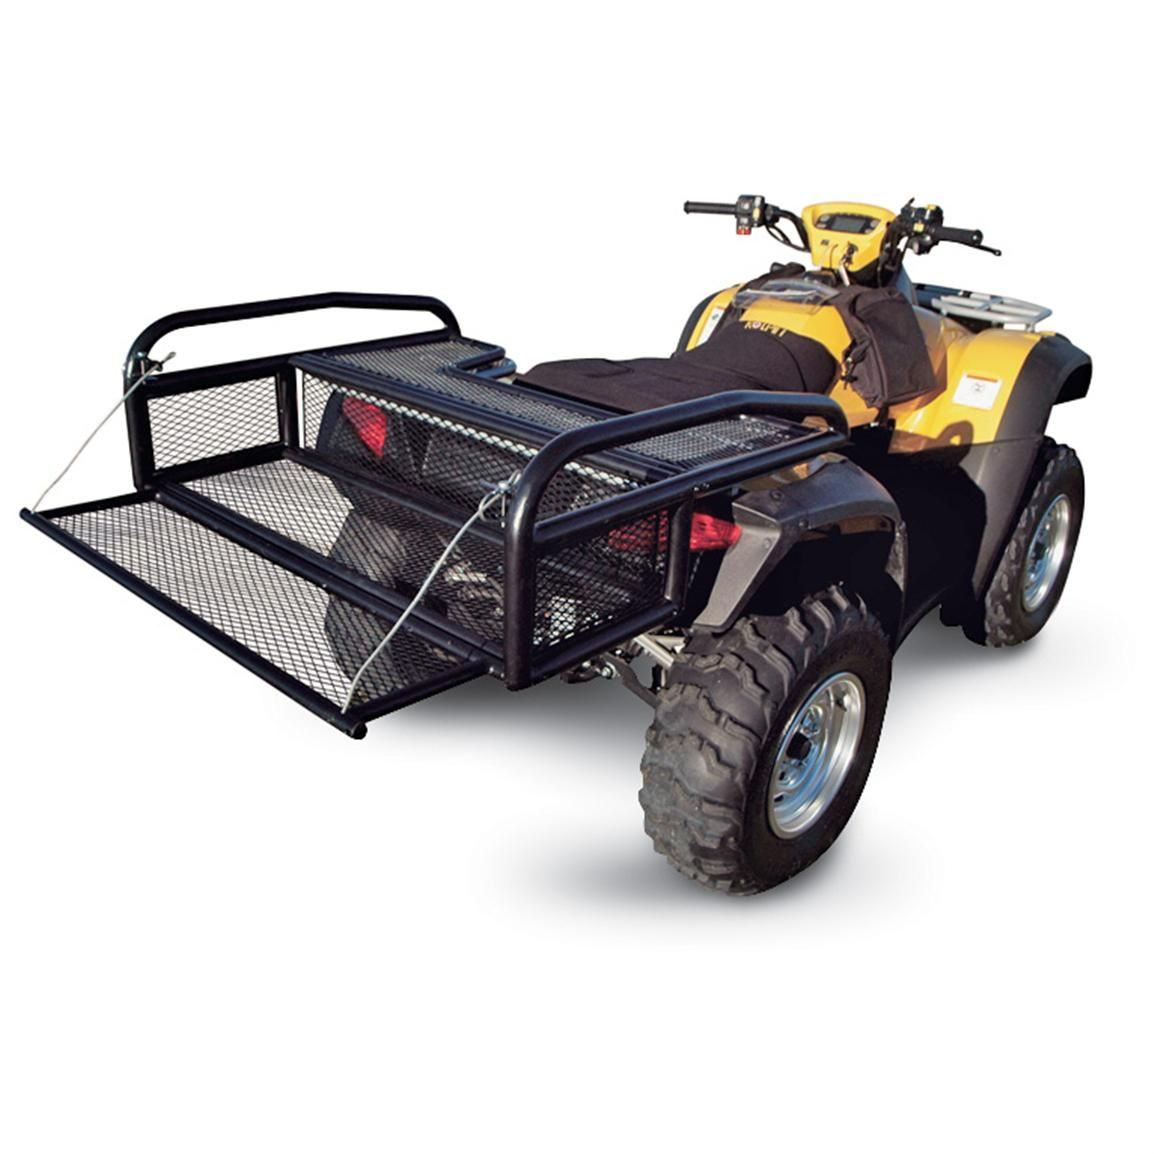 Atv rack hunting and fishing pinterest atv racks atv and sportsmans guide has your kolpin collapsible atv rear drop rack available at a great price in our racks bags collection publicscrutiny